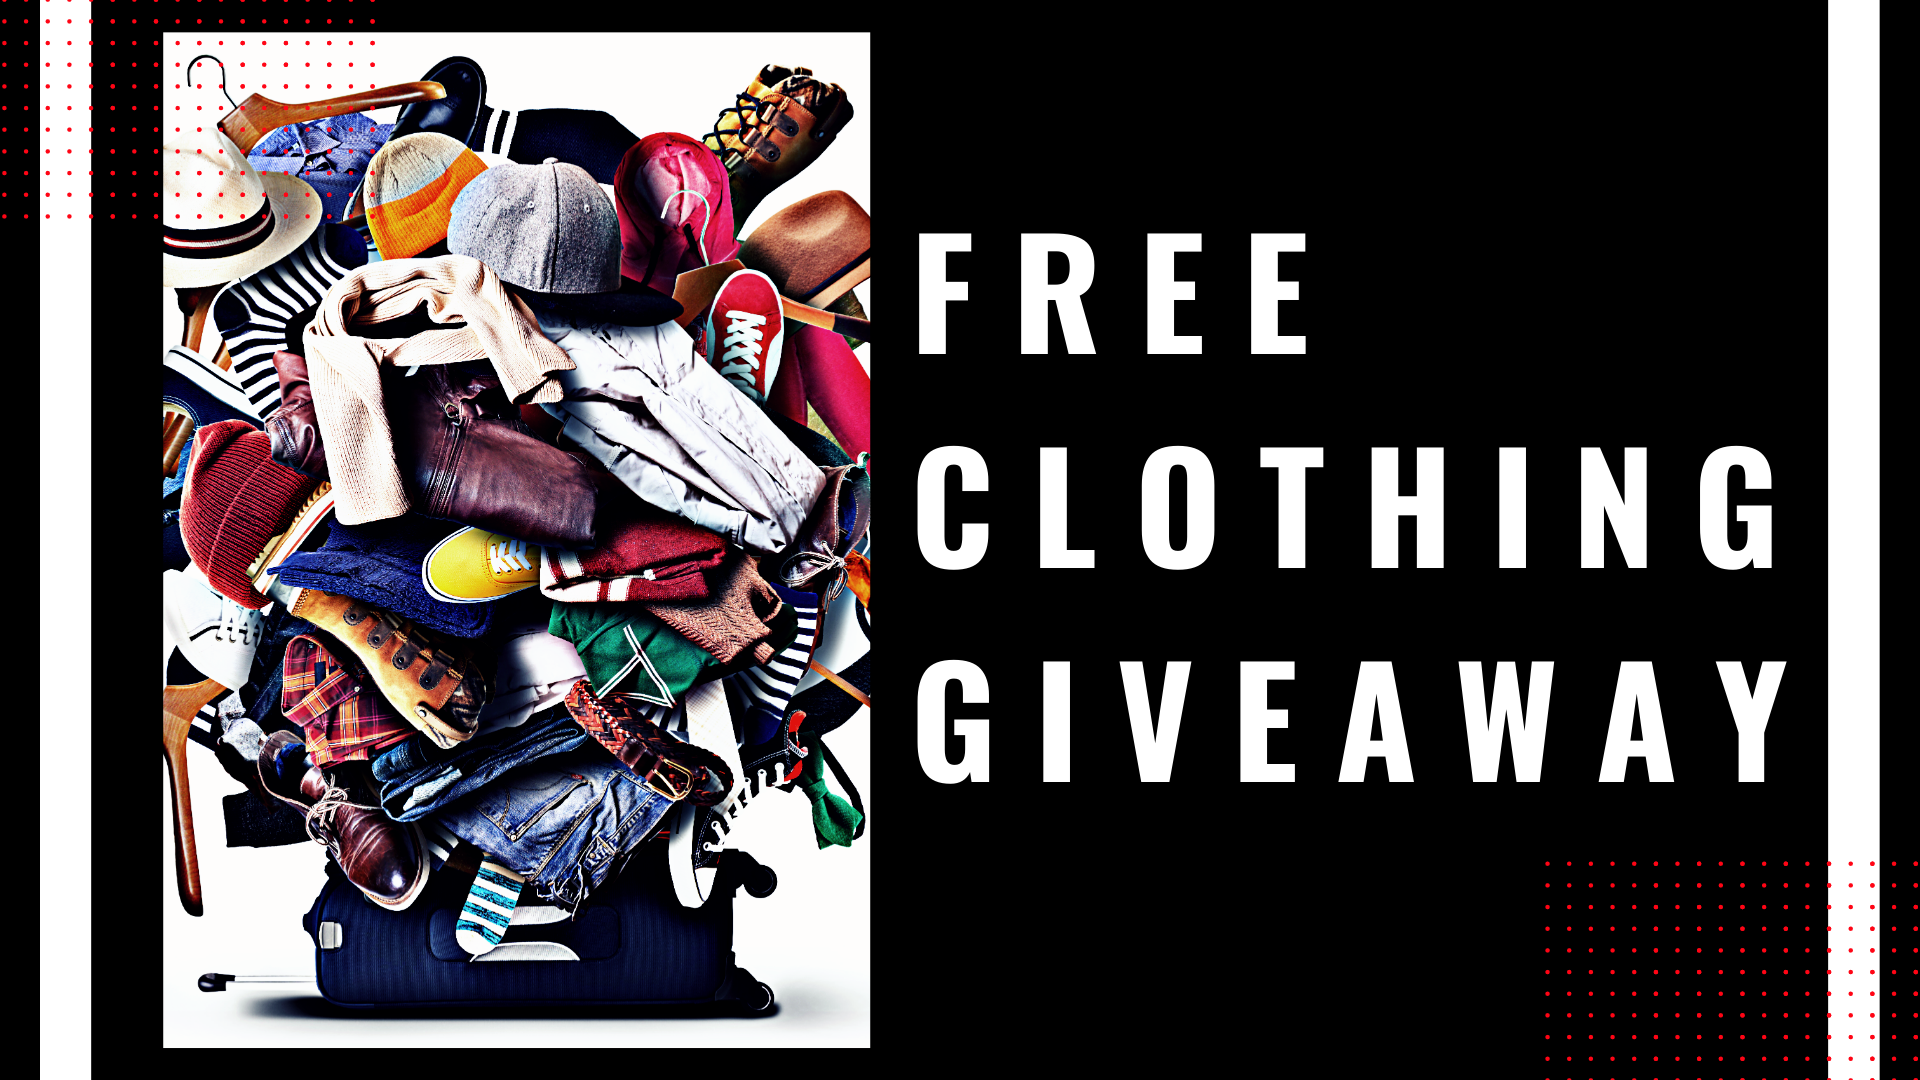 Free Clothing Giveaway_Dec19 1